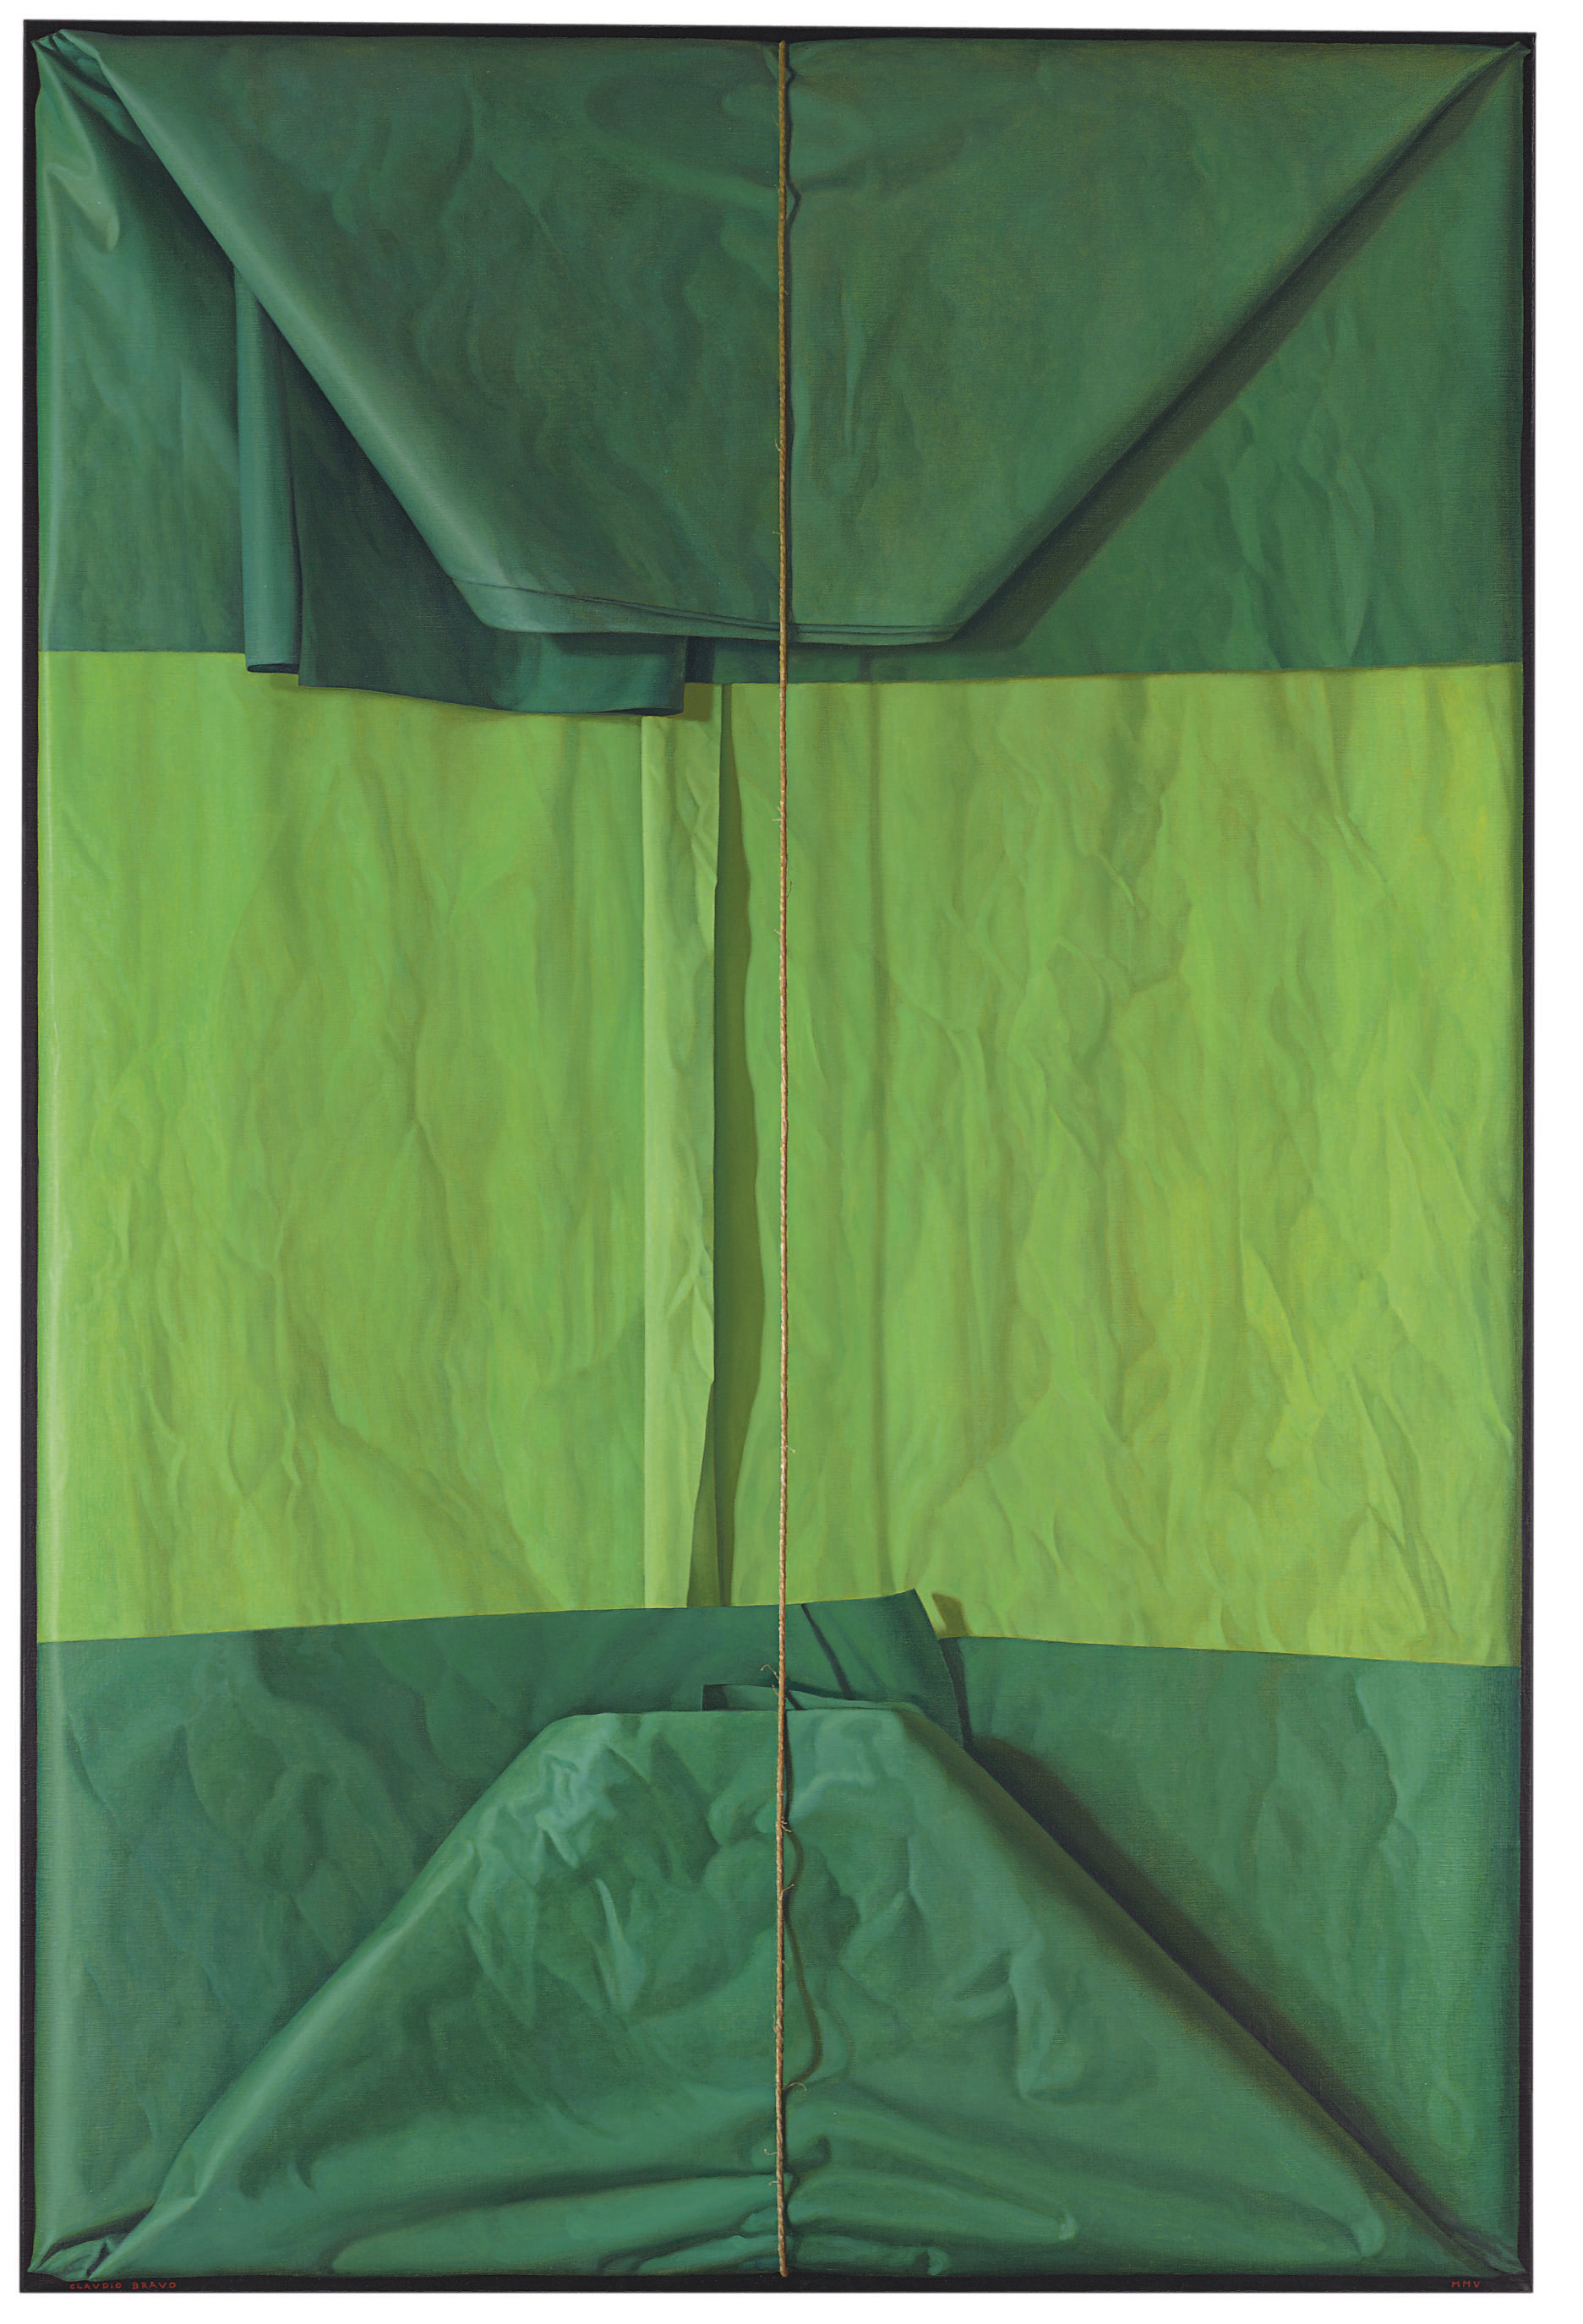 Paquete verde (Green Package)